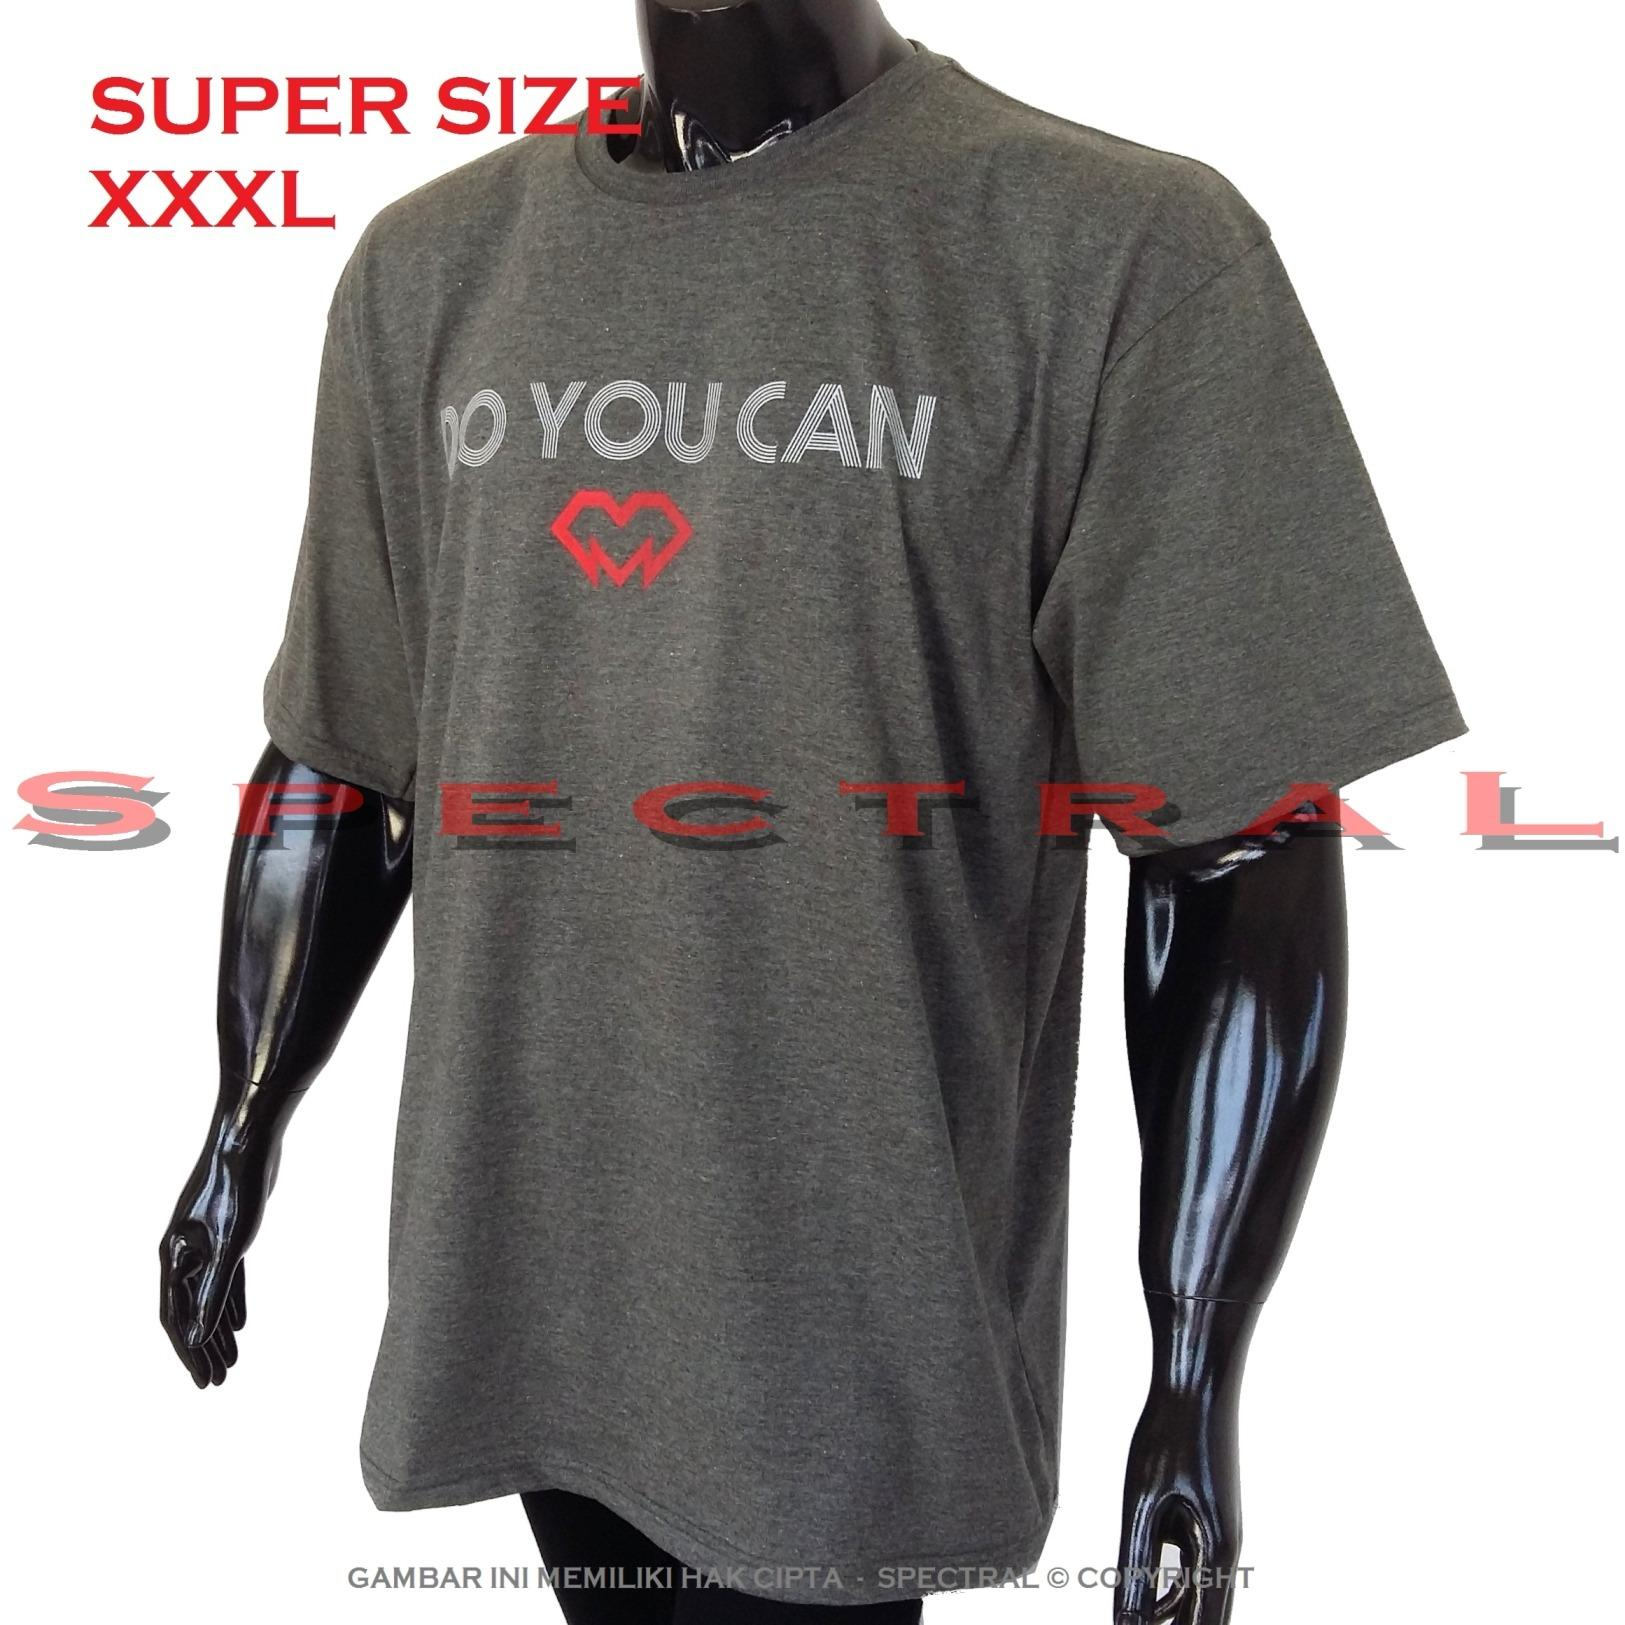 Spectral – 3XL SUPER BIG SIZE XXXL 100% Cotton Combed Kaos Distro Jumbo BIG T-Shirt Fashion Ukuran Besar Polos Celana Olahraga Atasan Pria Wanita Dewasa Bapak Orang Tua Muda  Gemuk Gendut Sport Casual Bagus Keren Baju Cowo Cewe Pakaian 3L DO YOU CAN